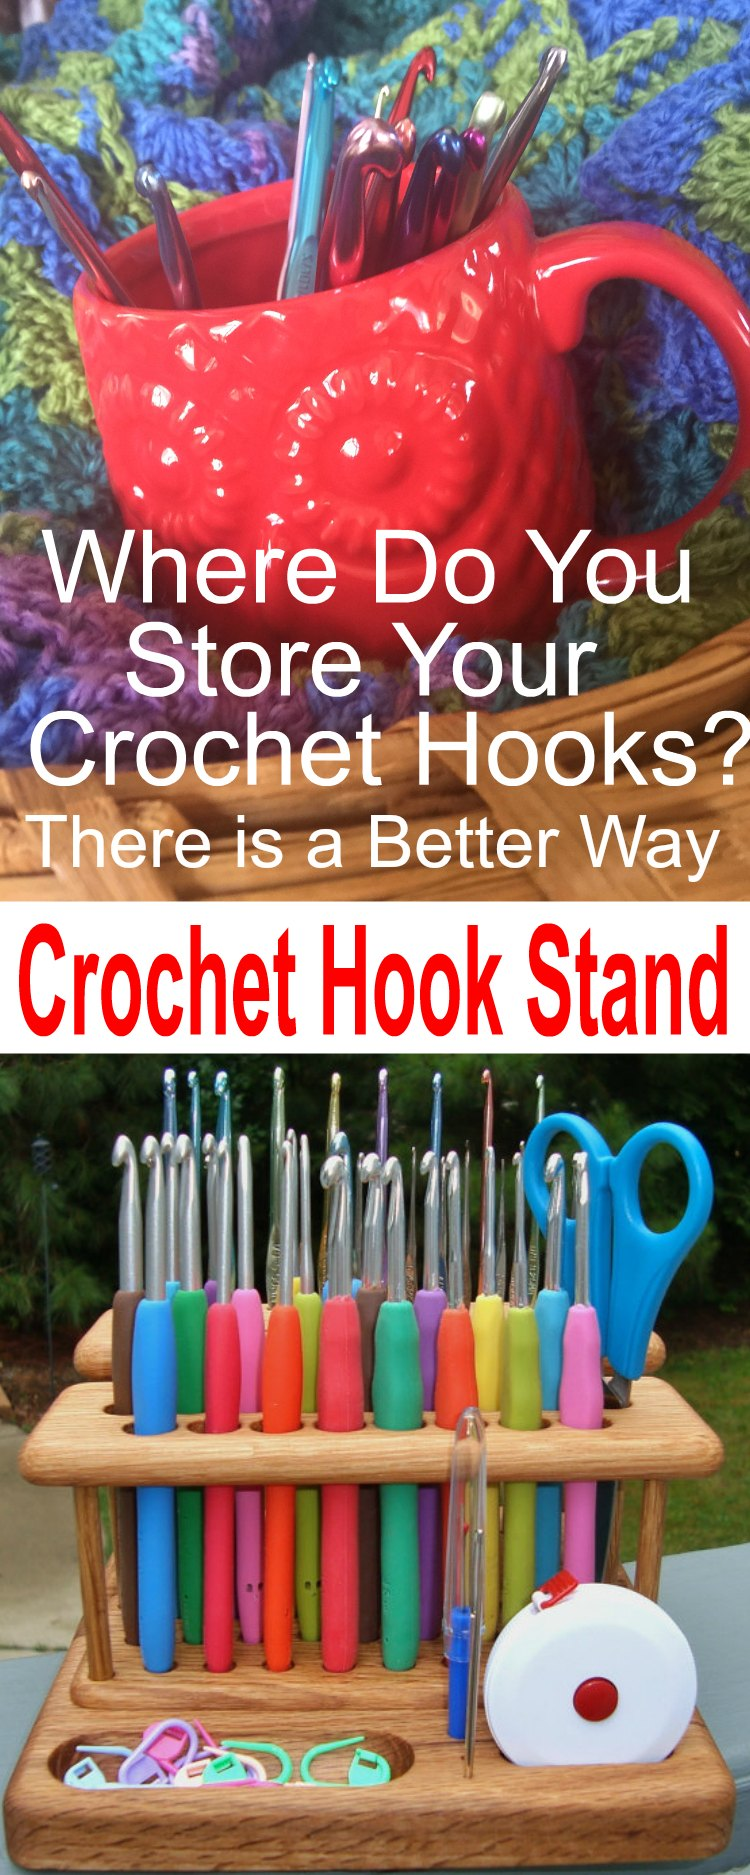 Wooden Crochet Hook Holder